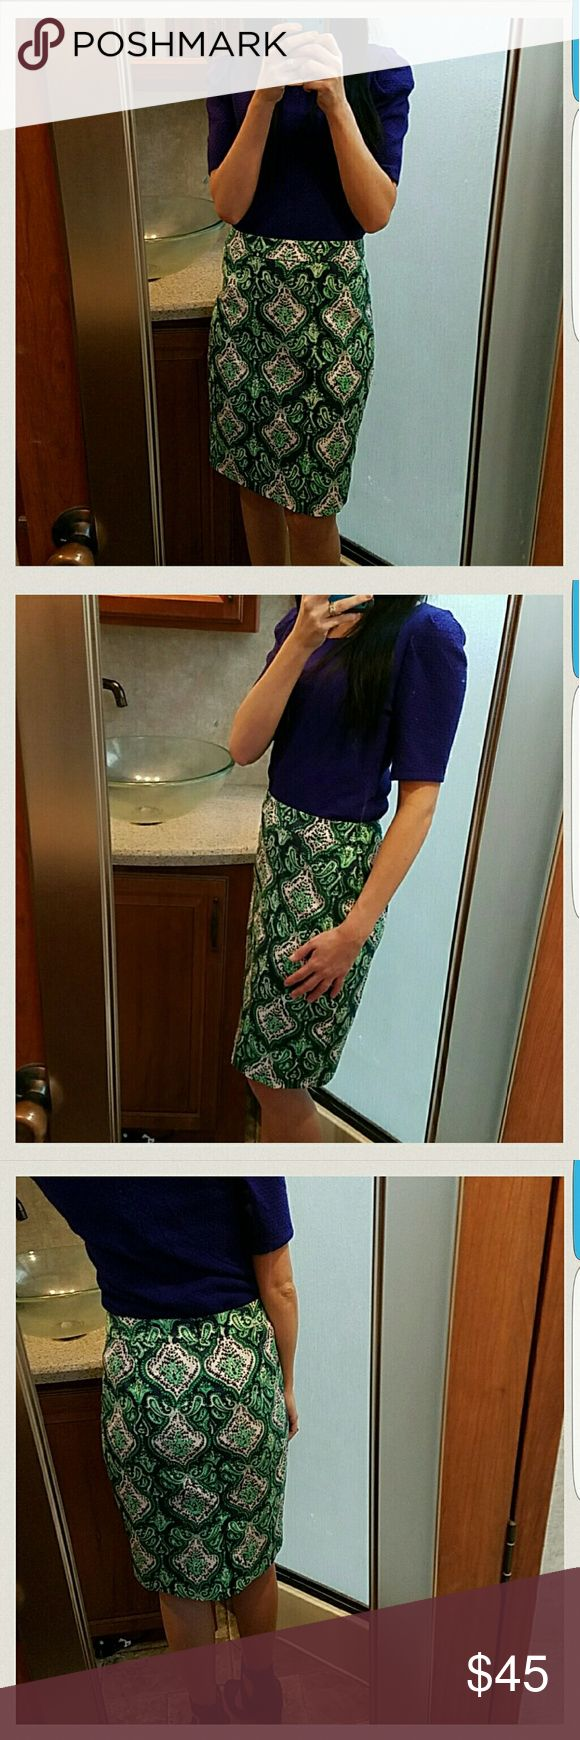 J.Crew Pencil Skirt Excellent condition. Navy blue and green. J. Crew Skirts Pencil